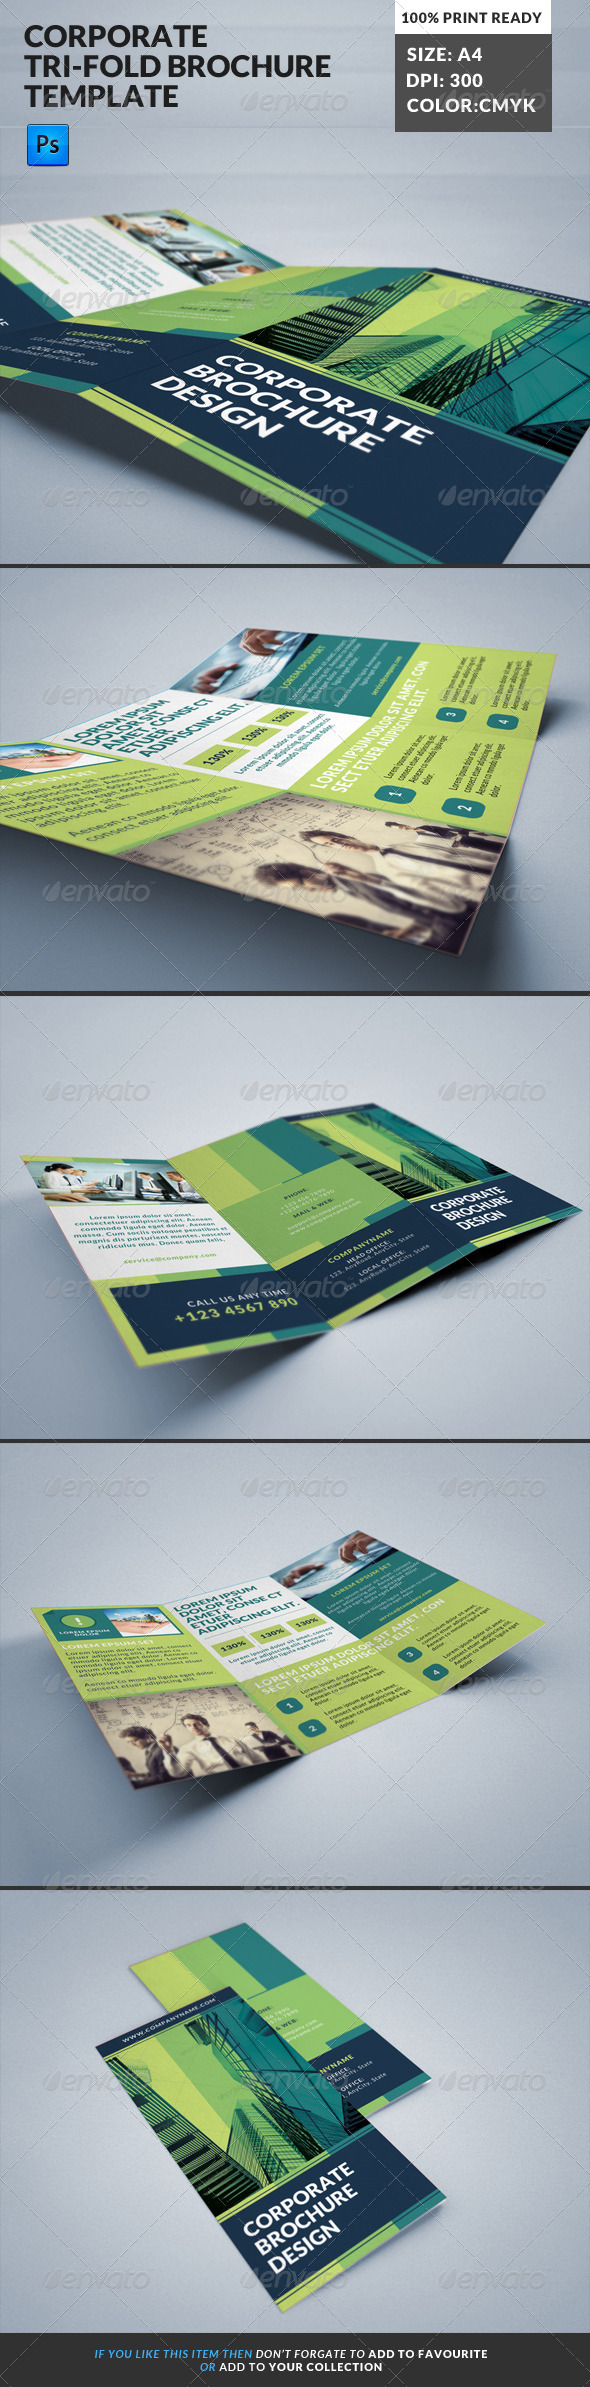 GraphicRiver Corporate Tri-Fold Brochures Template 13 8164791